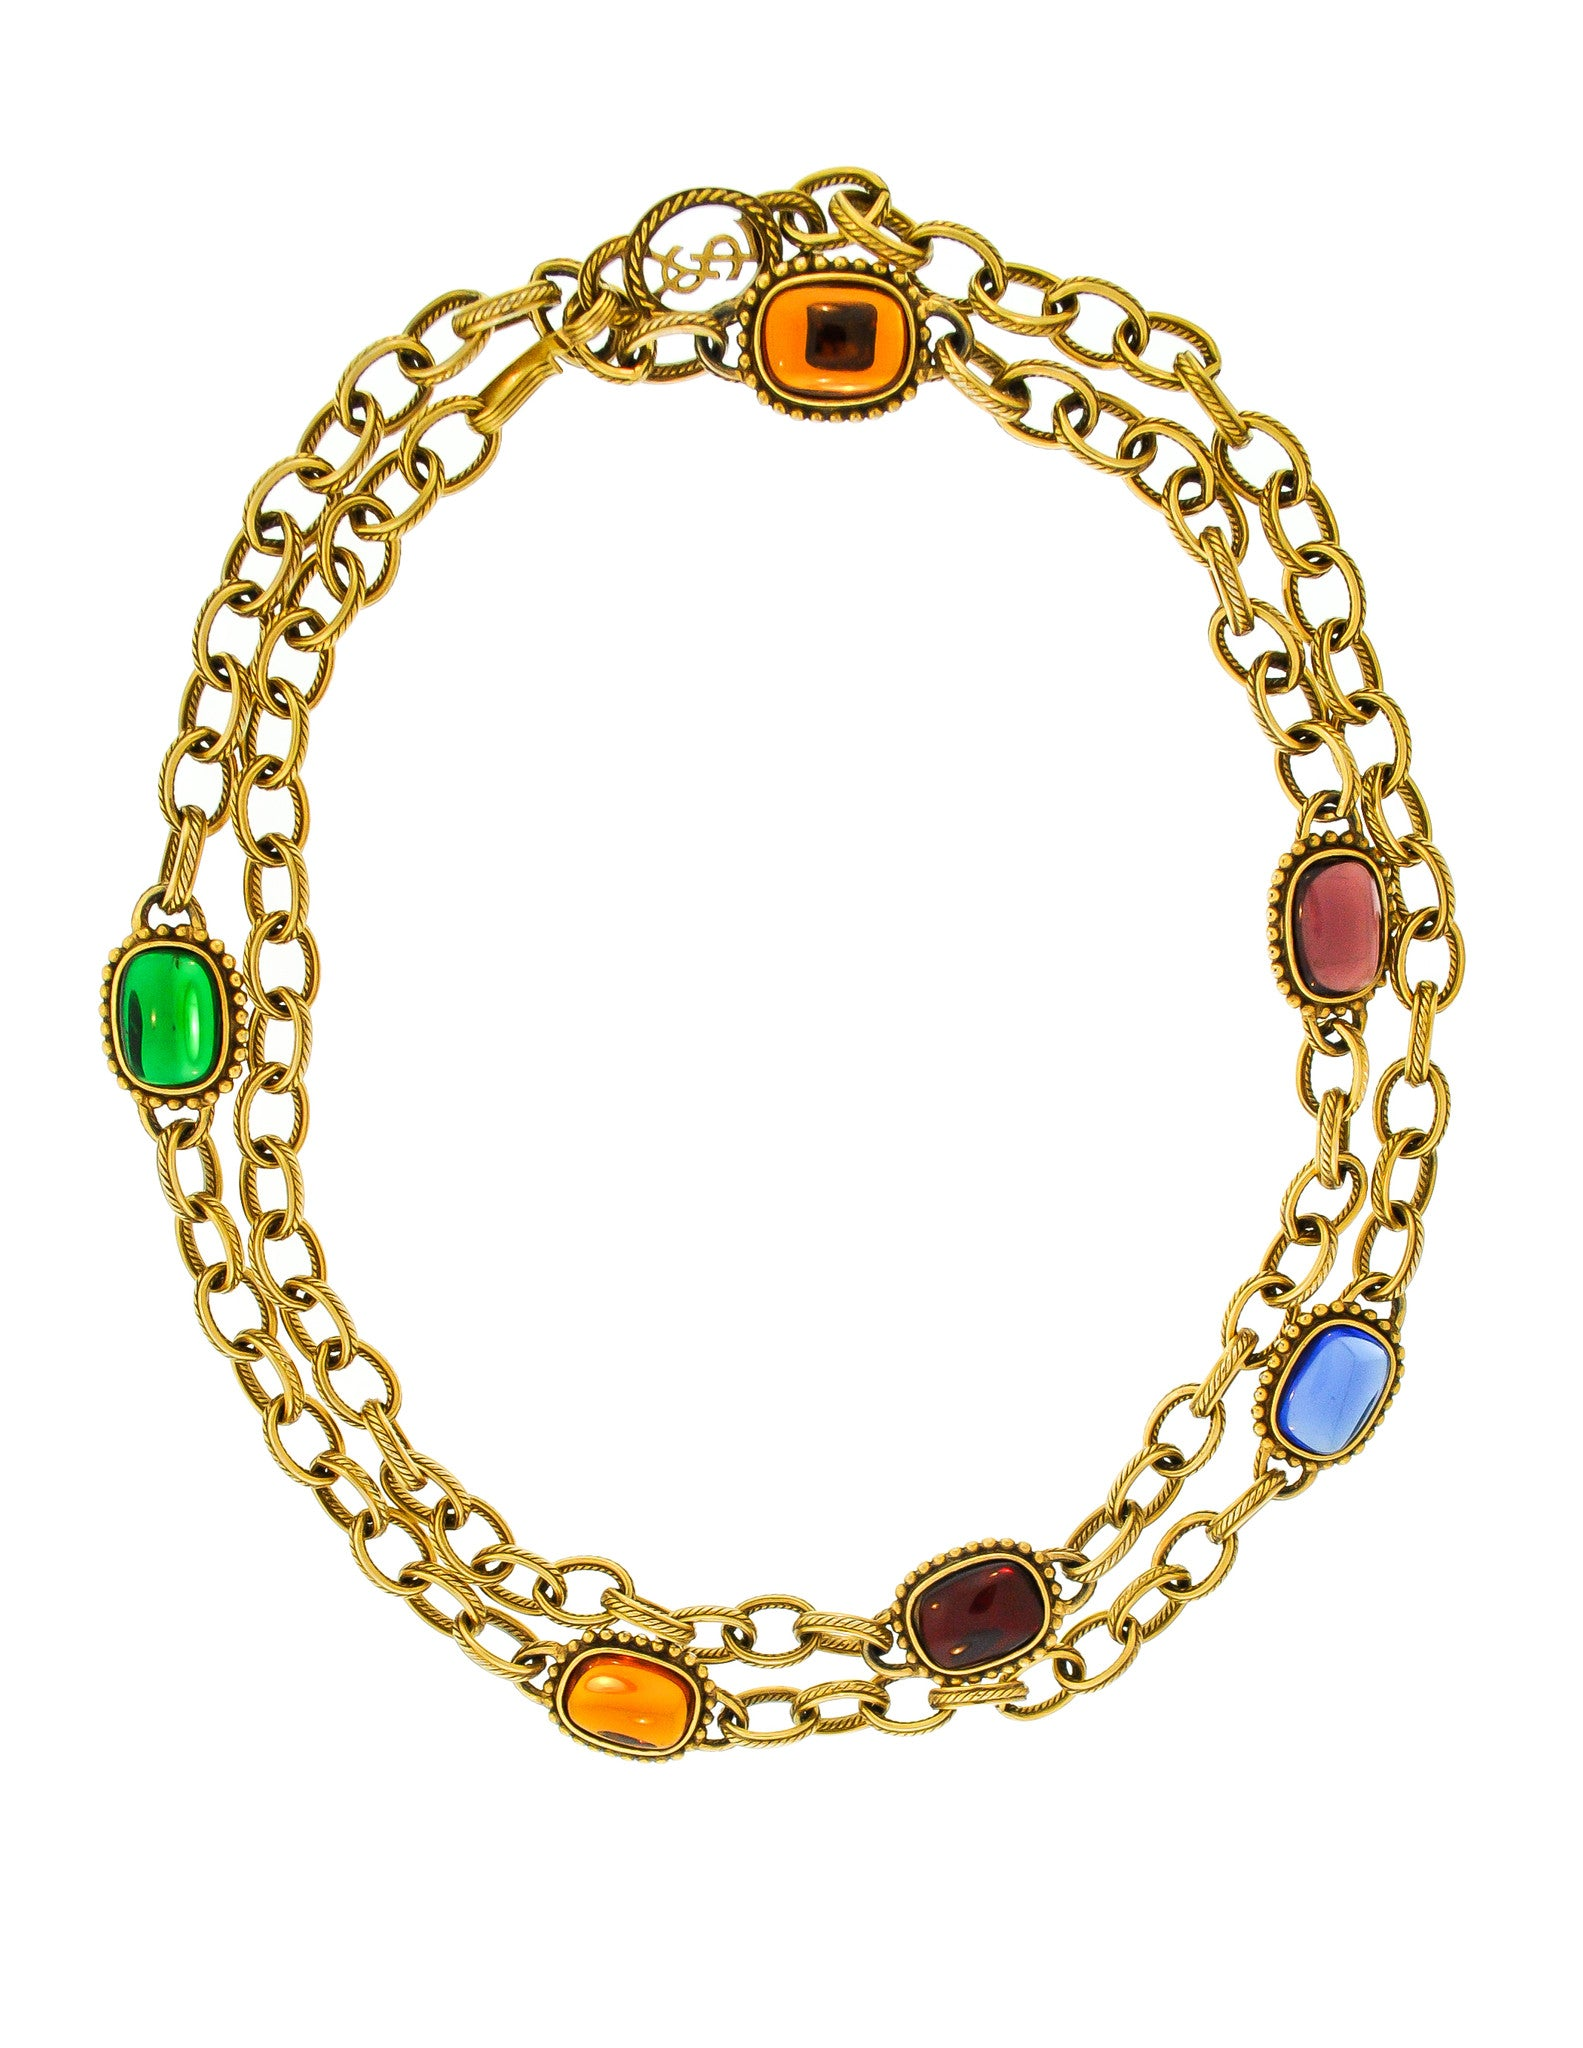 8adbff0d667 YSL Vintage Multicolor Jewel Gold Necklace - Amarcord Vintage Fashion - 1